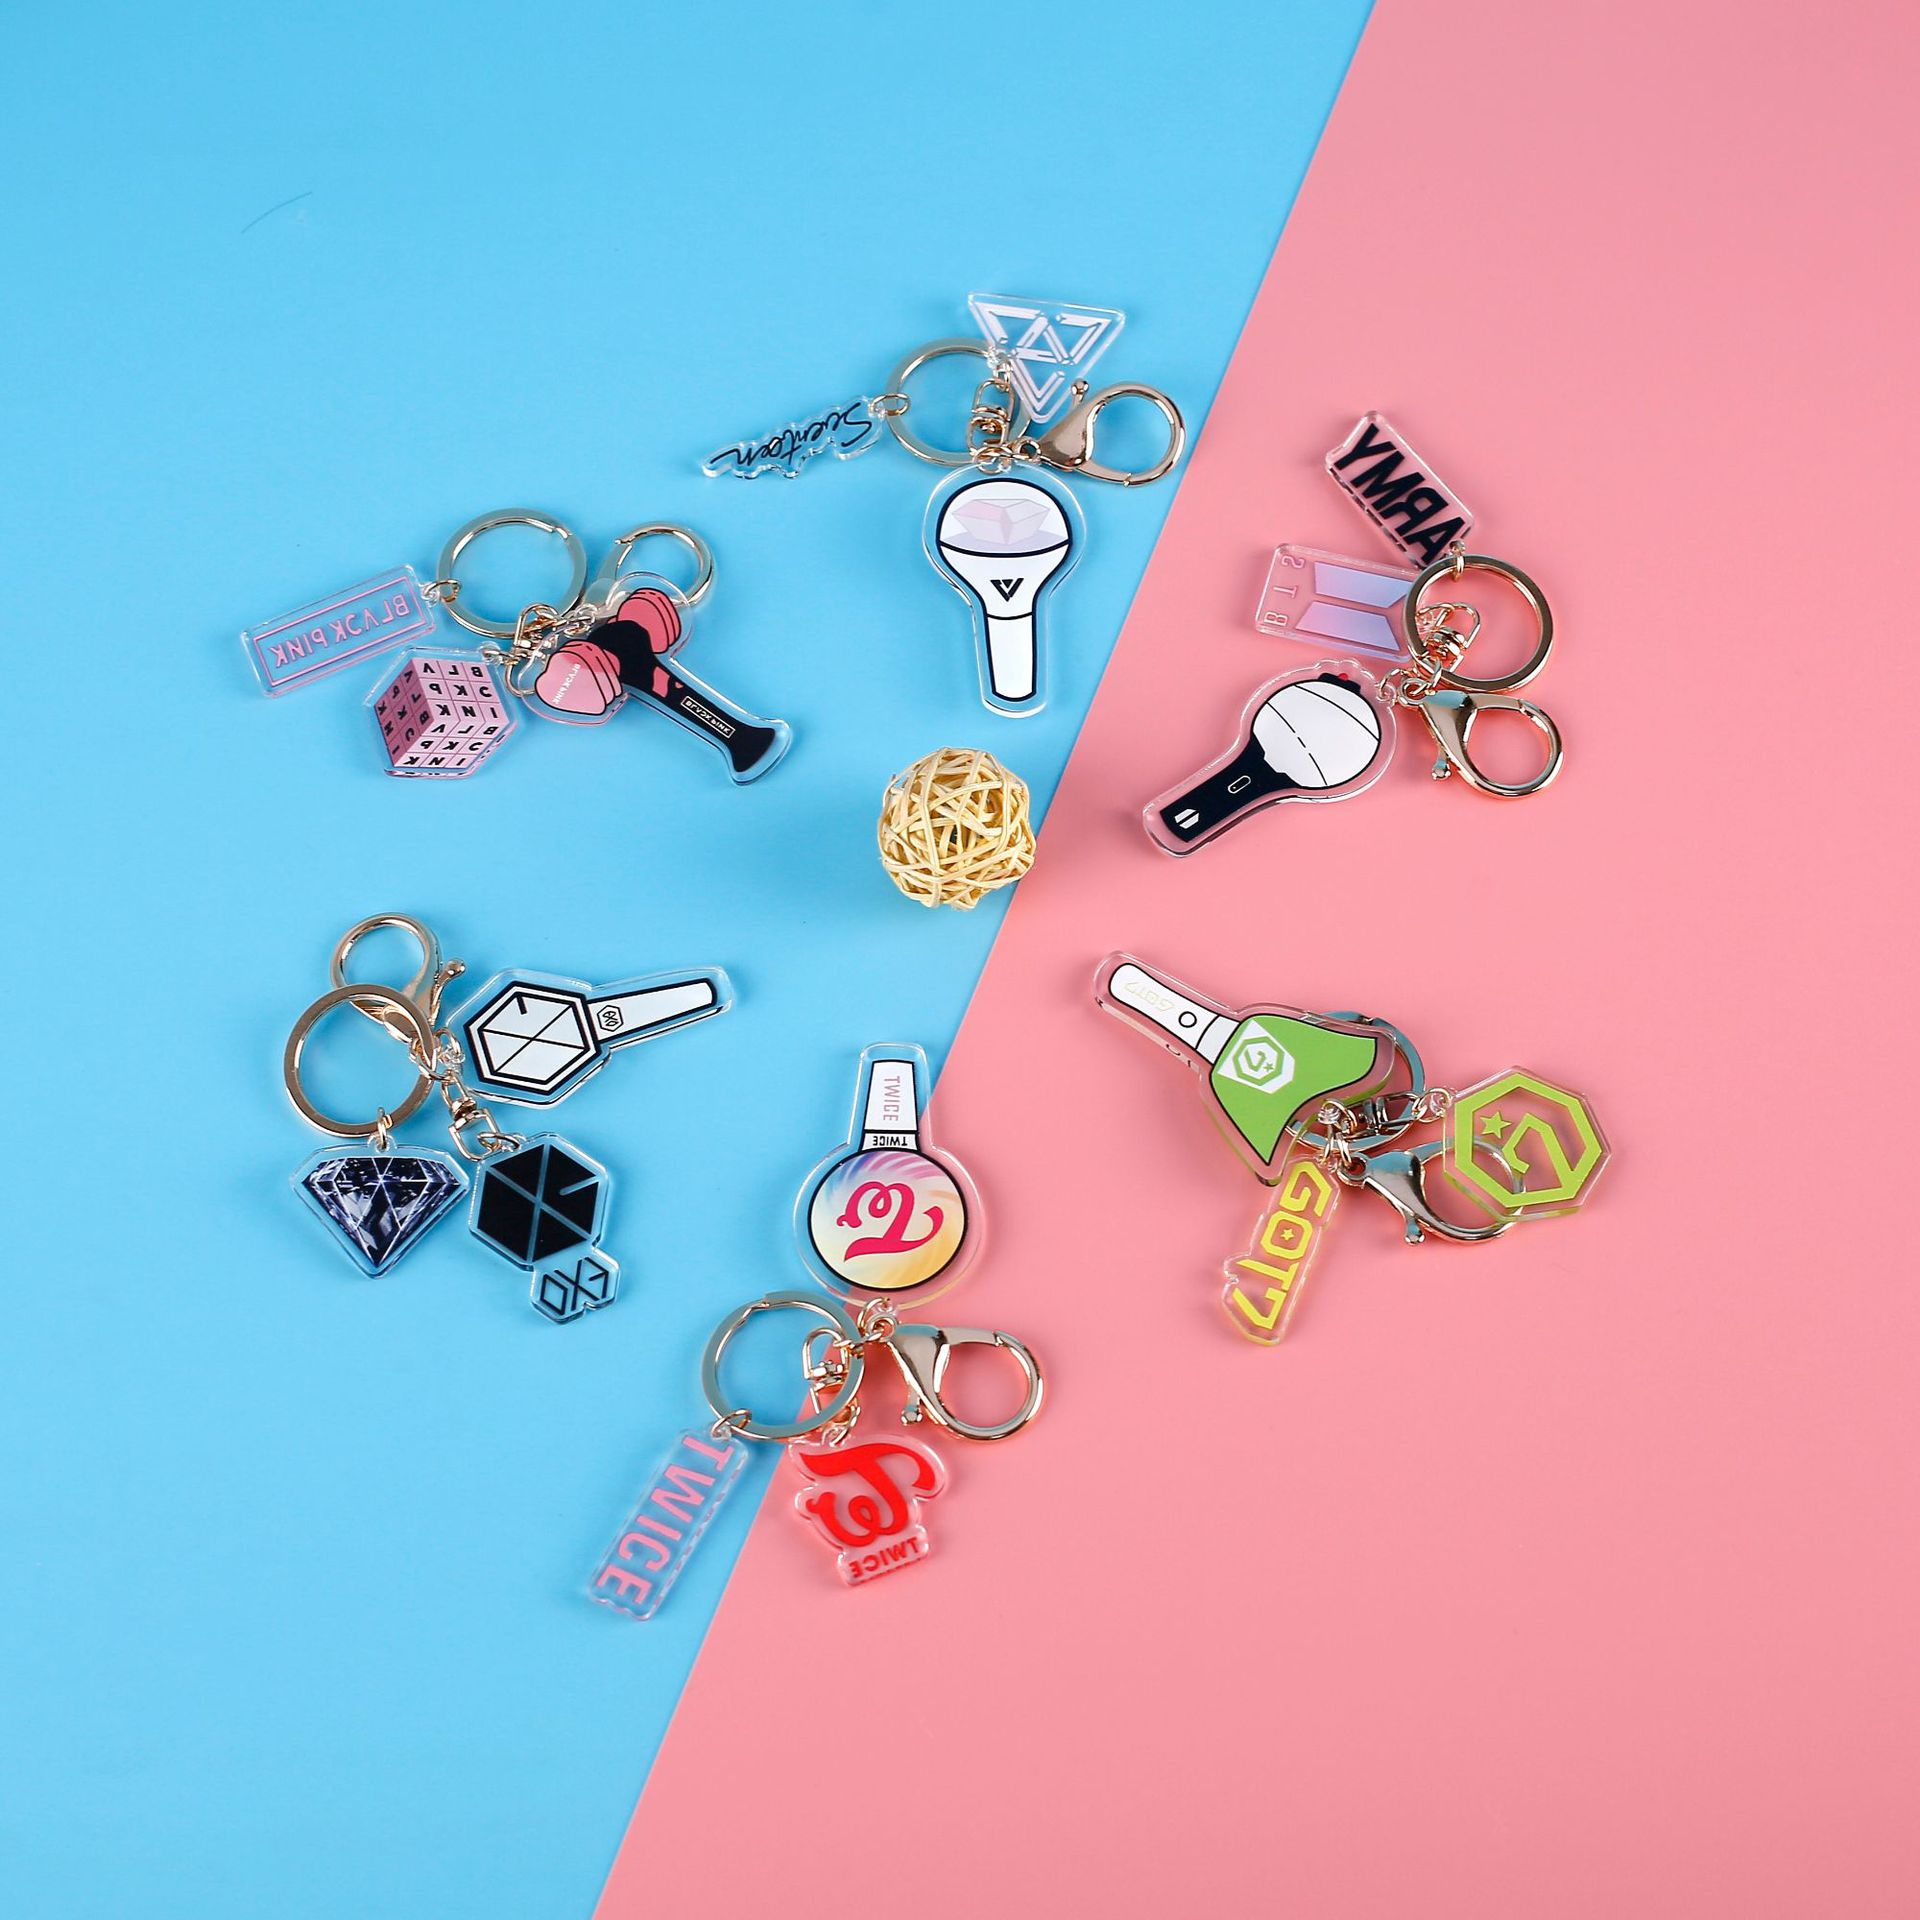 Kpop Korean Band Blackpink Exo Twice Acrylic Pendent Key Ring